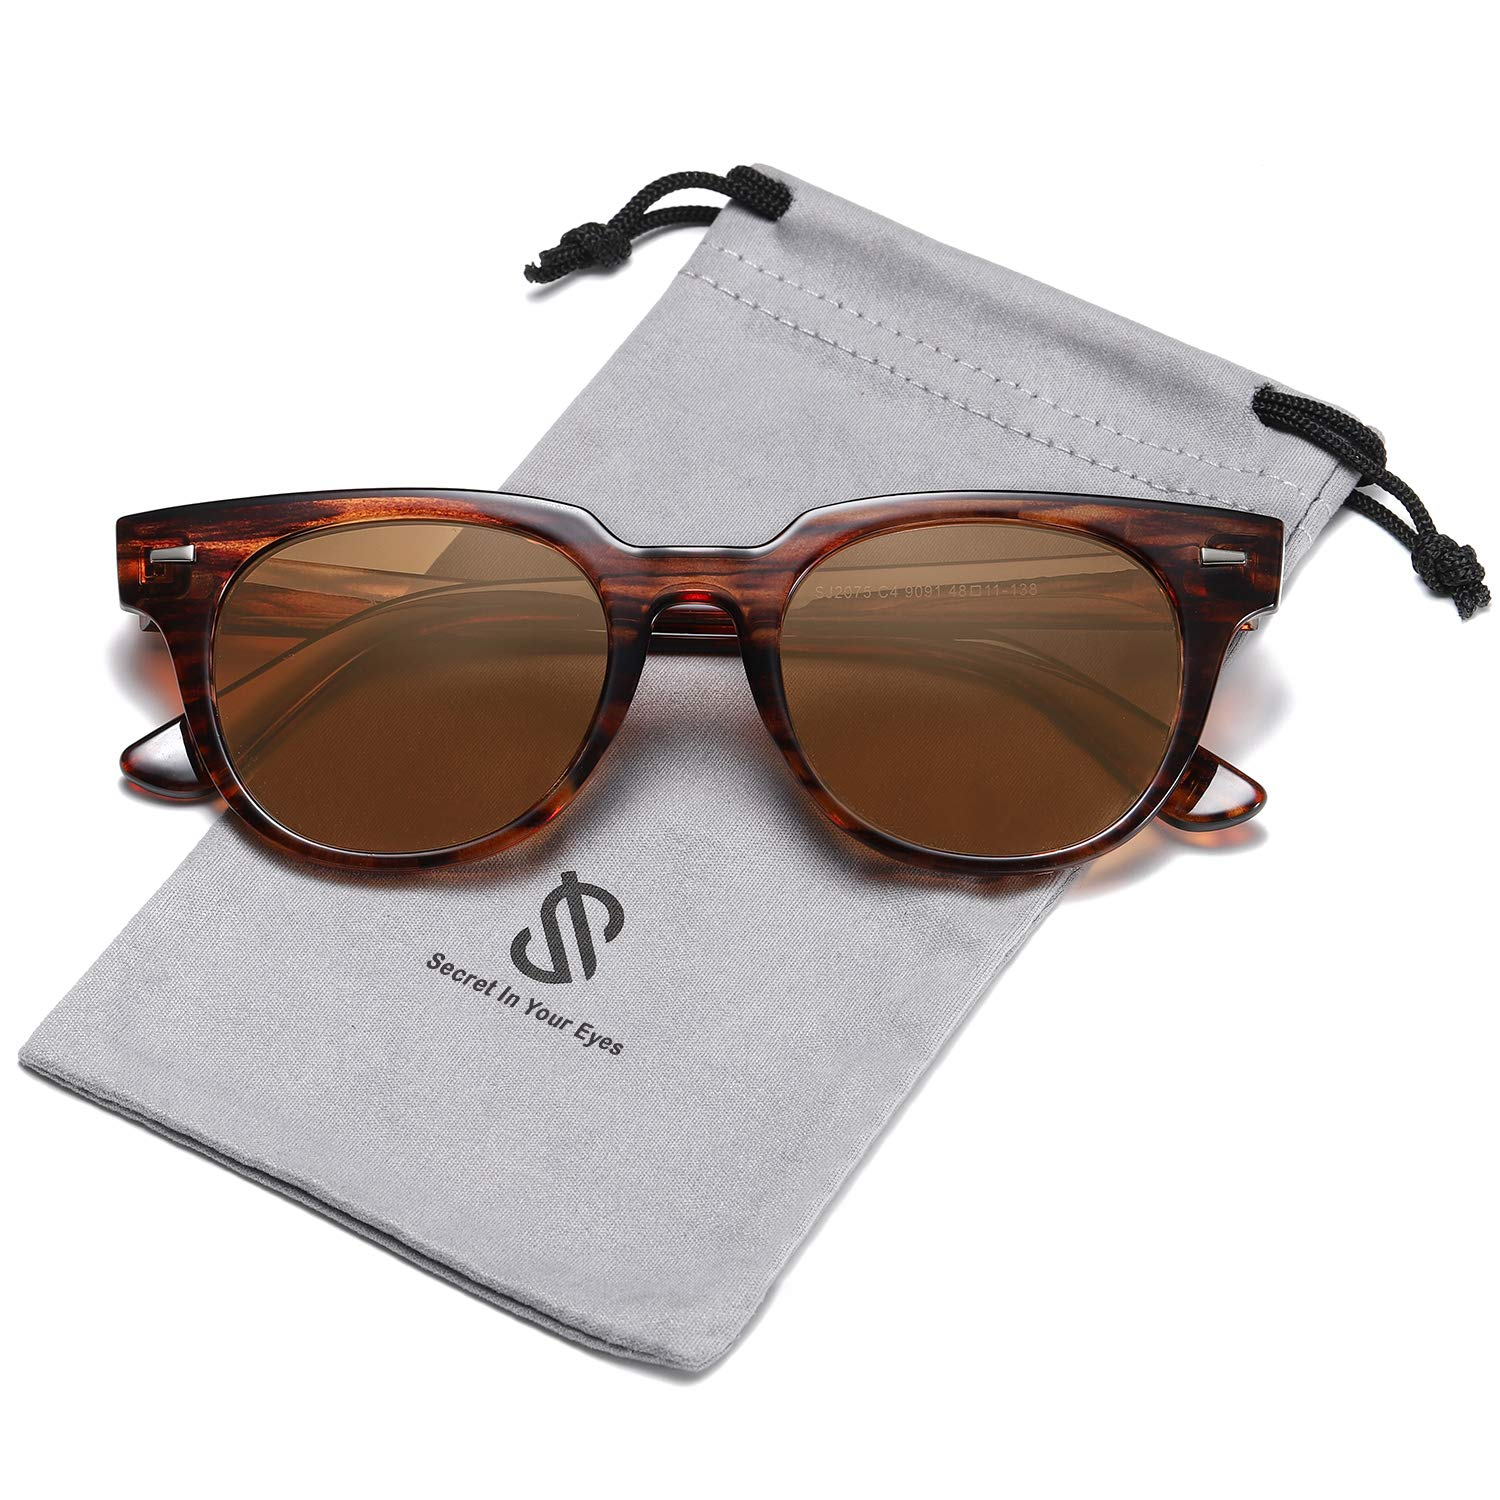 SOJOS Square Polarized Sunglasses for Men and Women MEMORIES SJ2075 with Brown Frame/Brown Polarized Lens by SOJOS